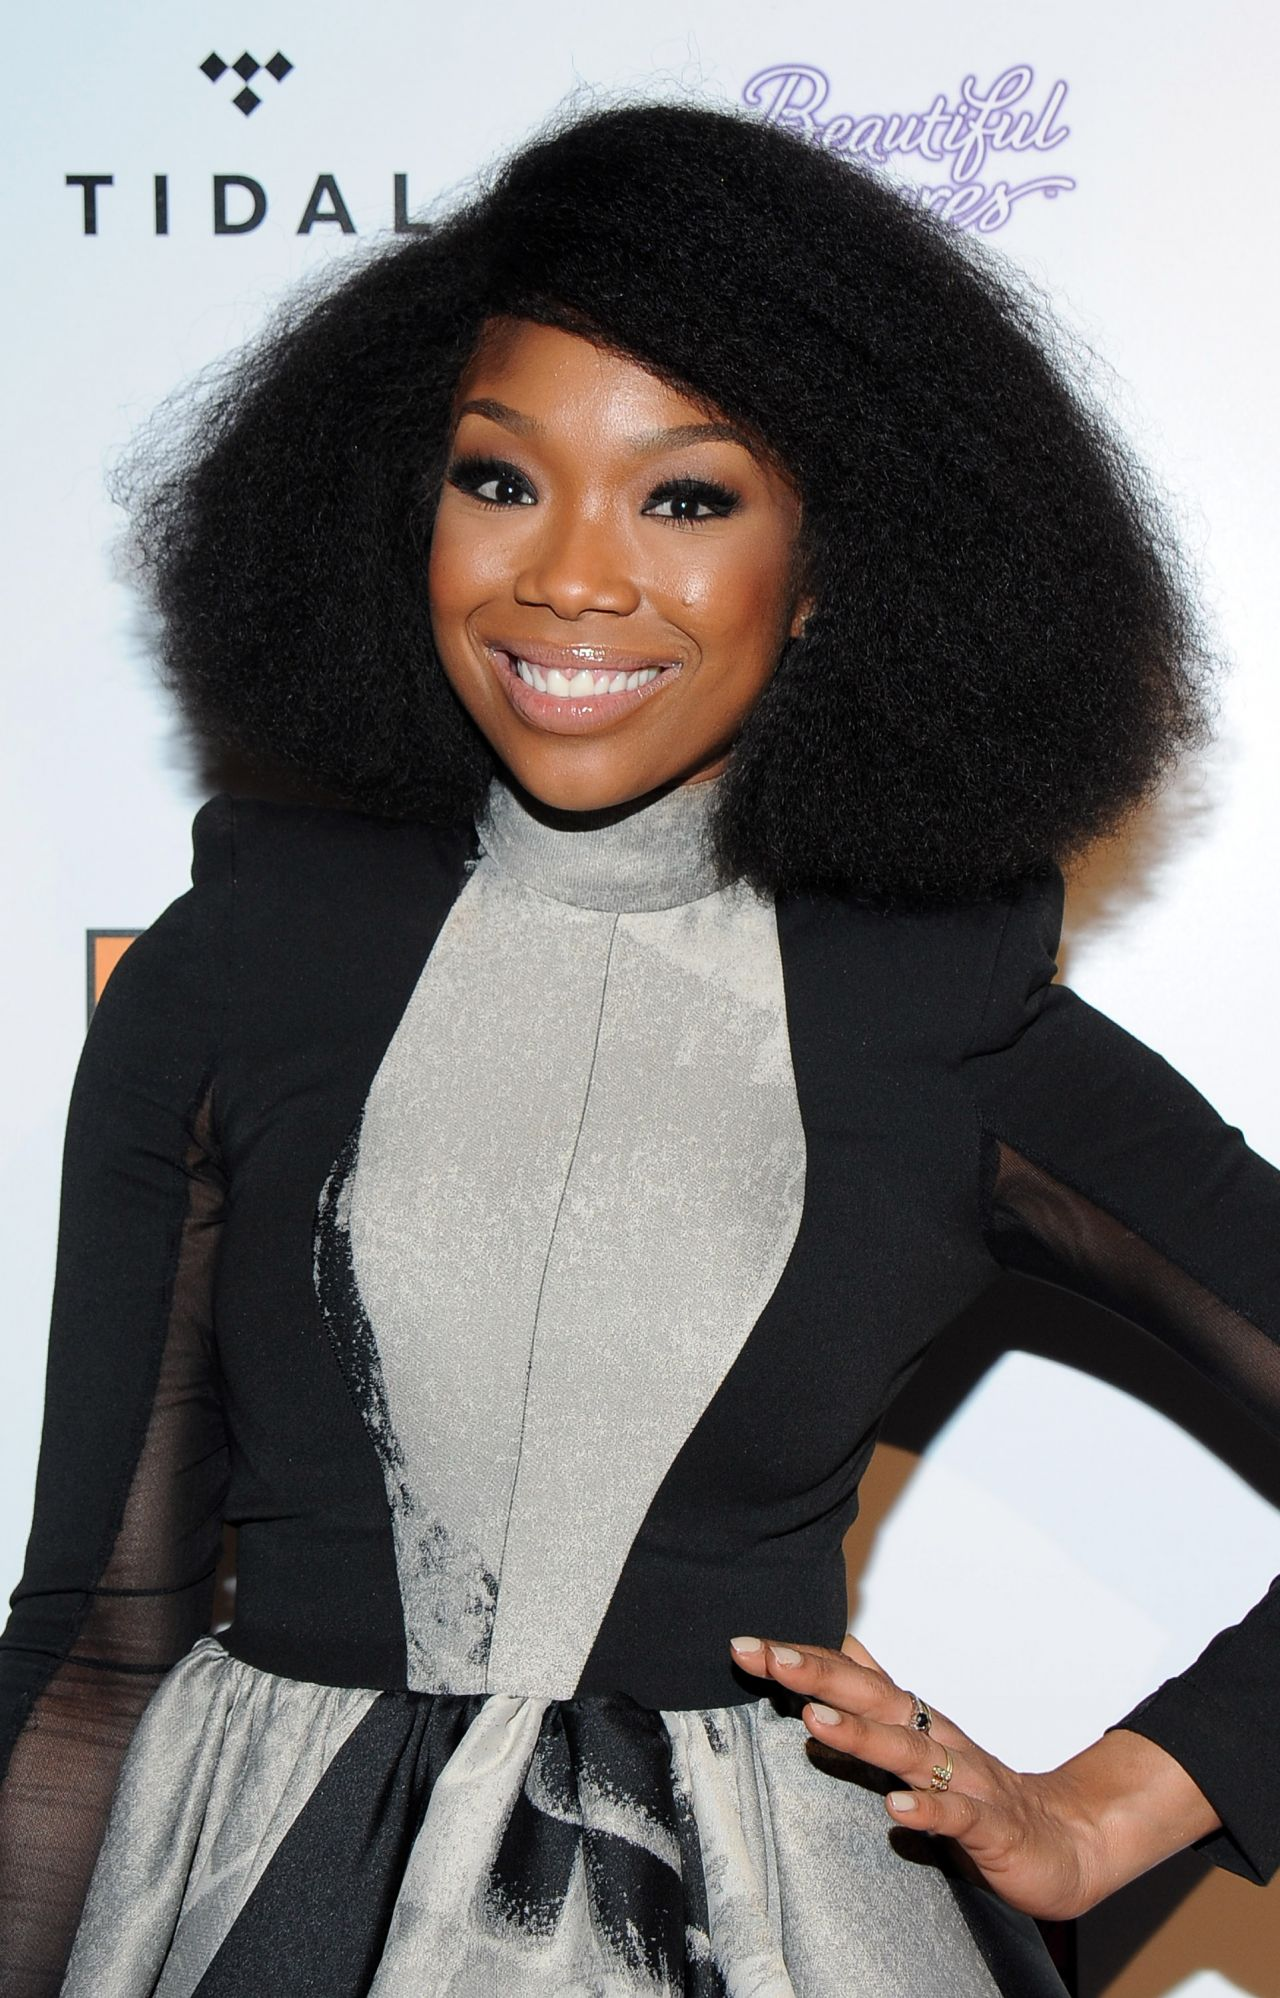 brandy-norwood-2015-bet-awards-after-party-in-los-angeles_3 | The Brandy Blog!